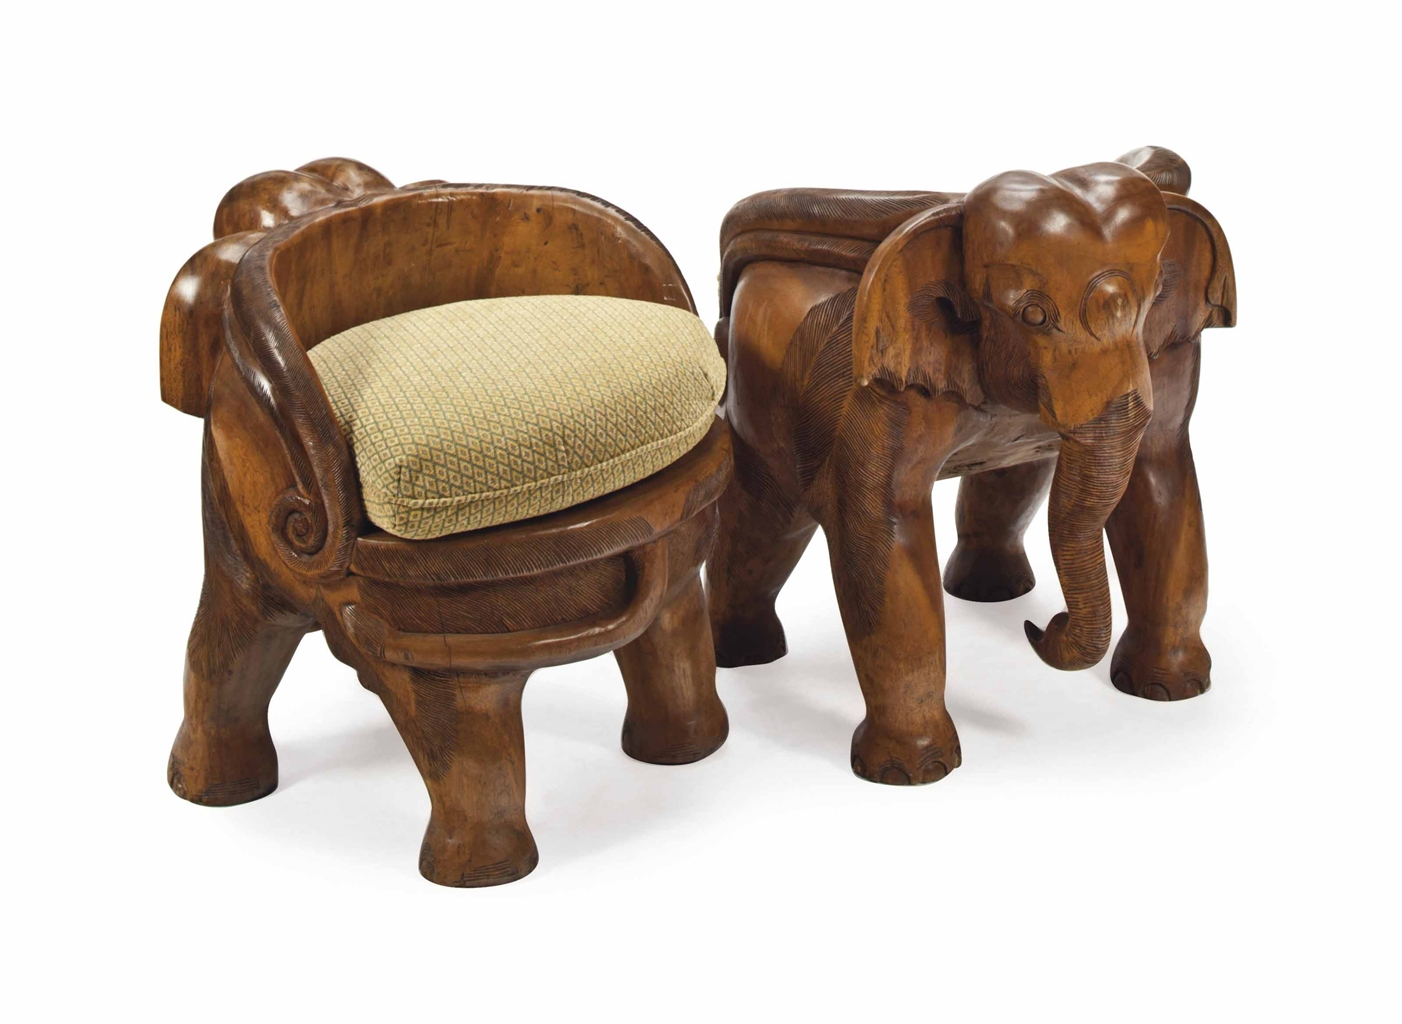 A PAIR OF CARVED HARDWOOD ELEPHANTFORM SMALL CHAIRS